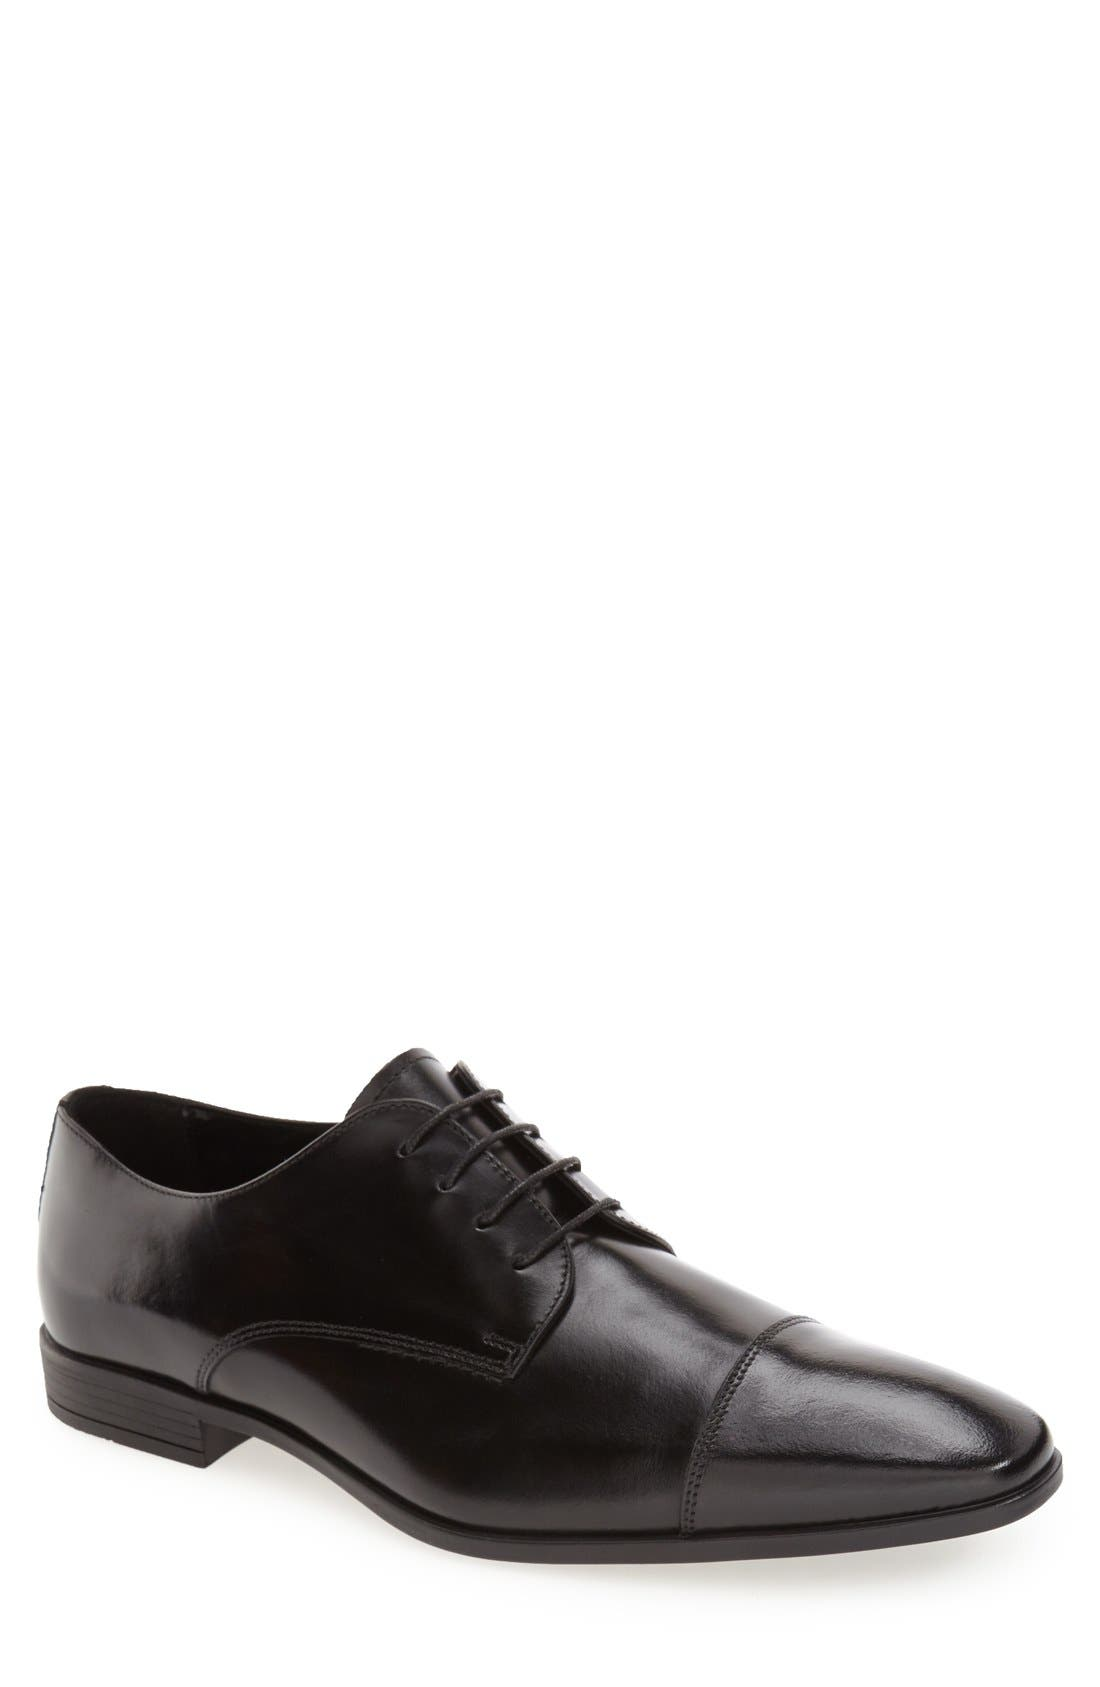 Main Image - The Rail 'Stark' Cap Toe Derby (Men)